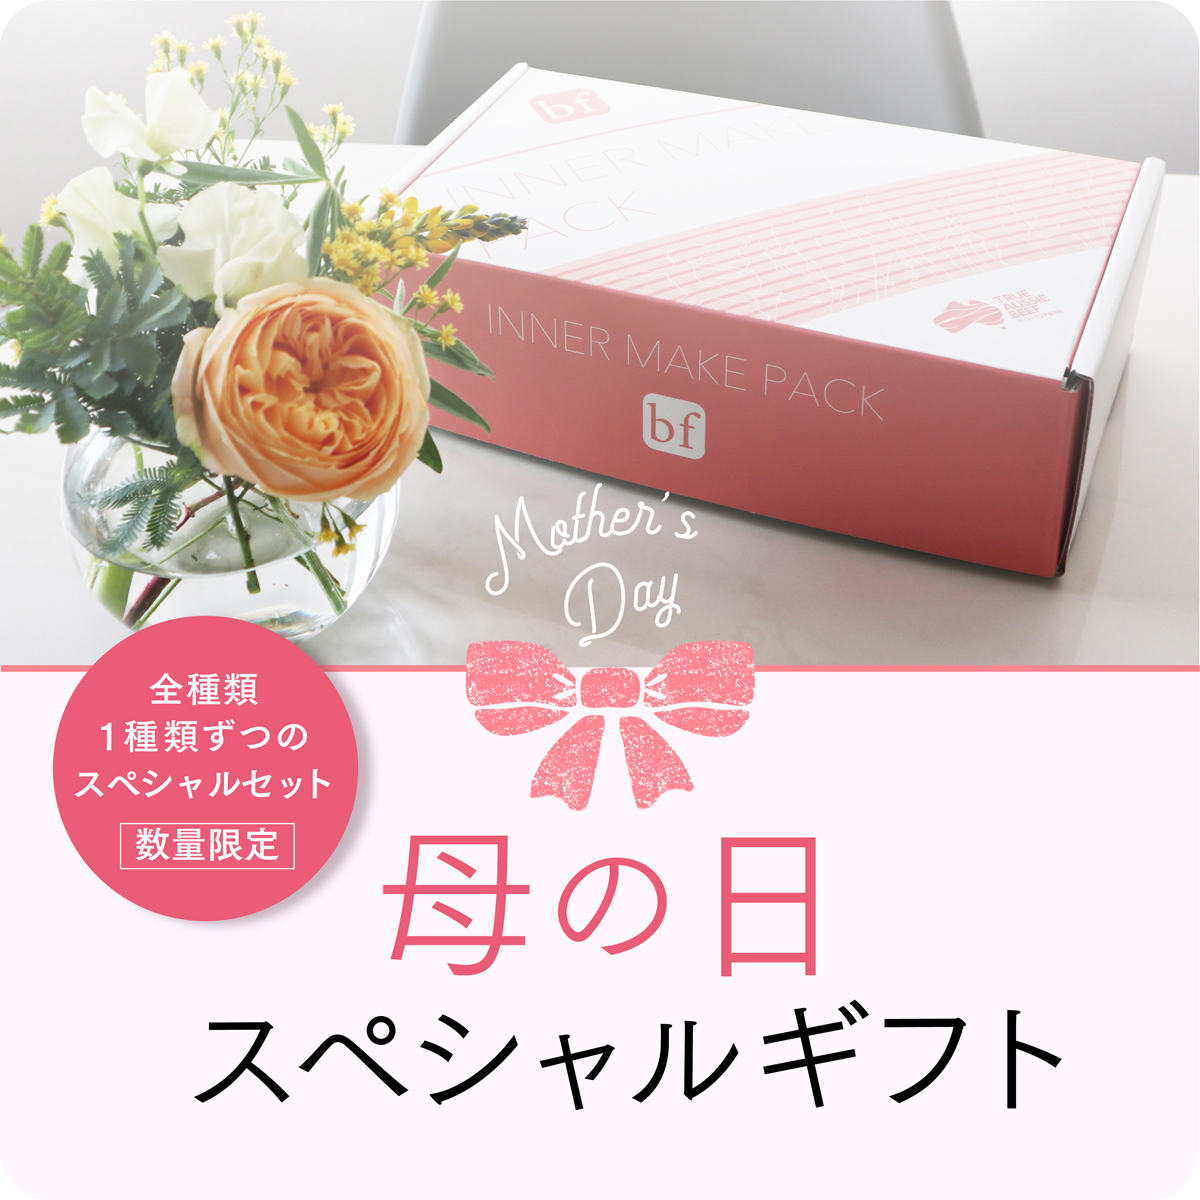 bf 母の日スペシャルギフト